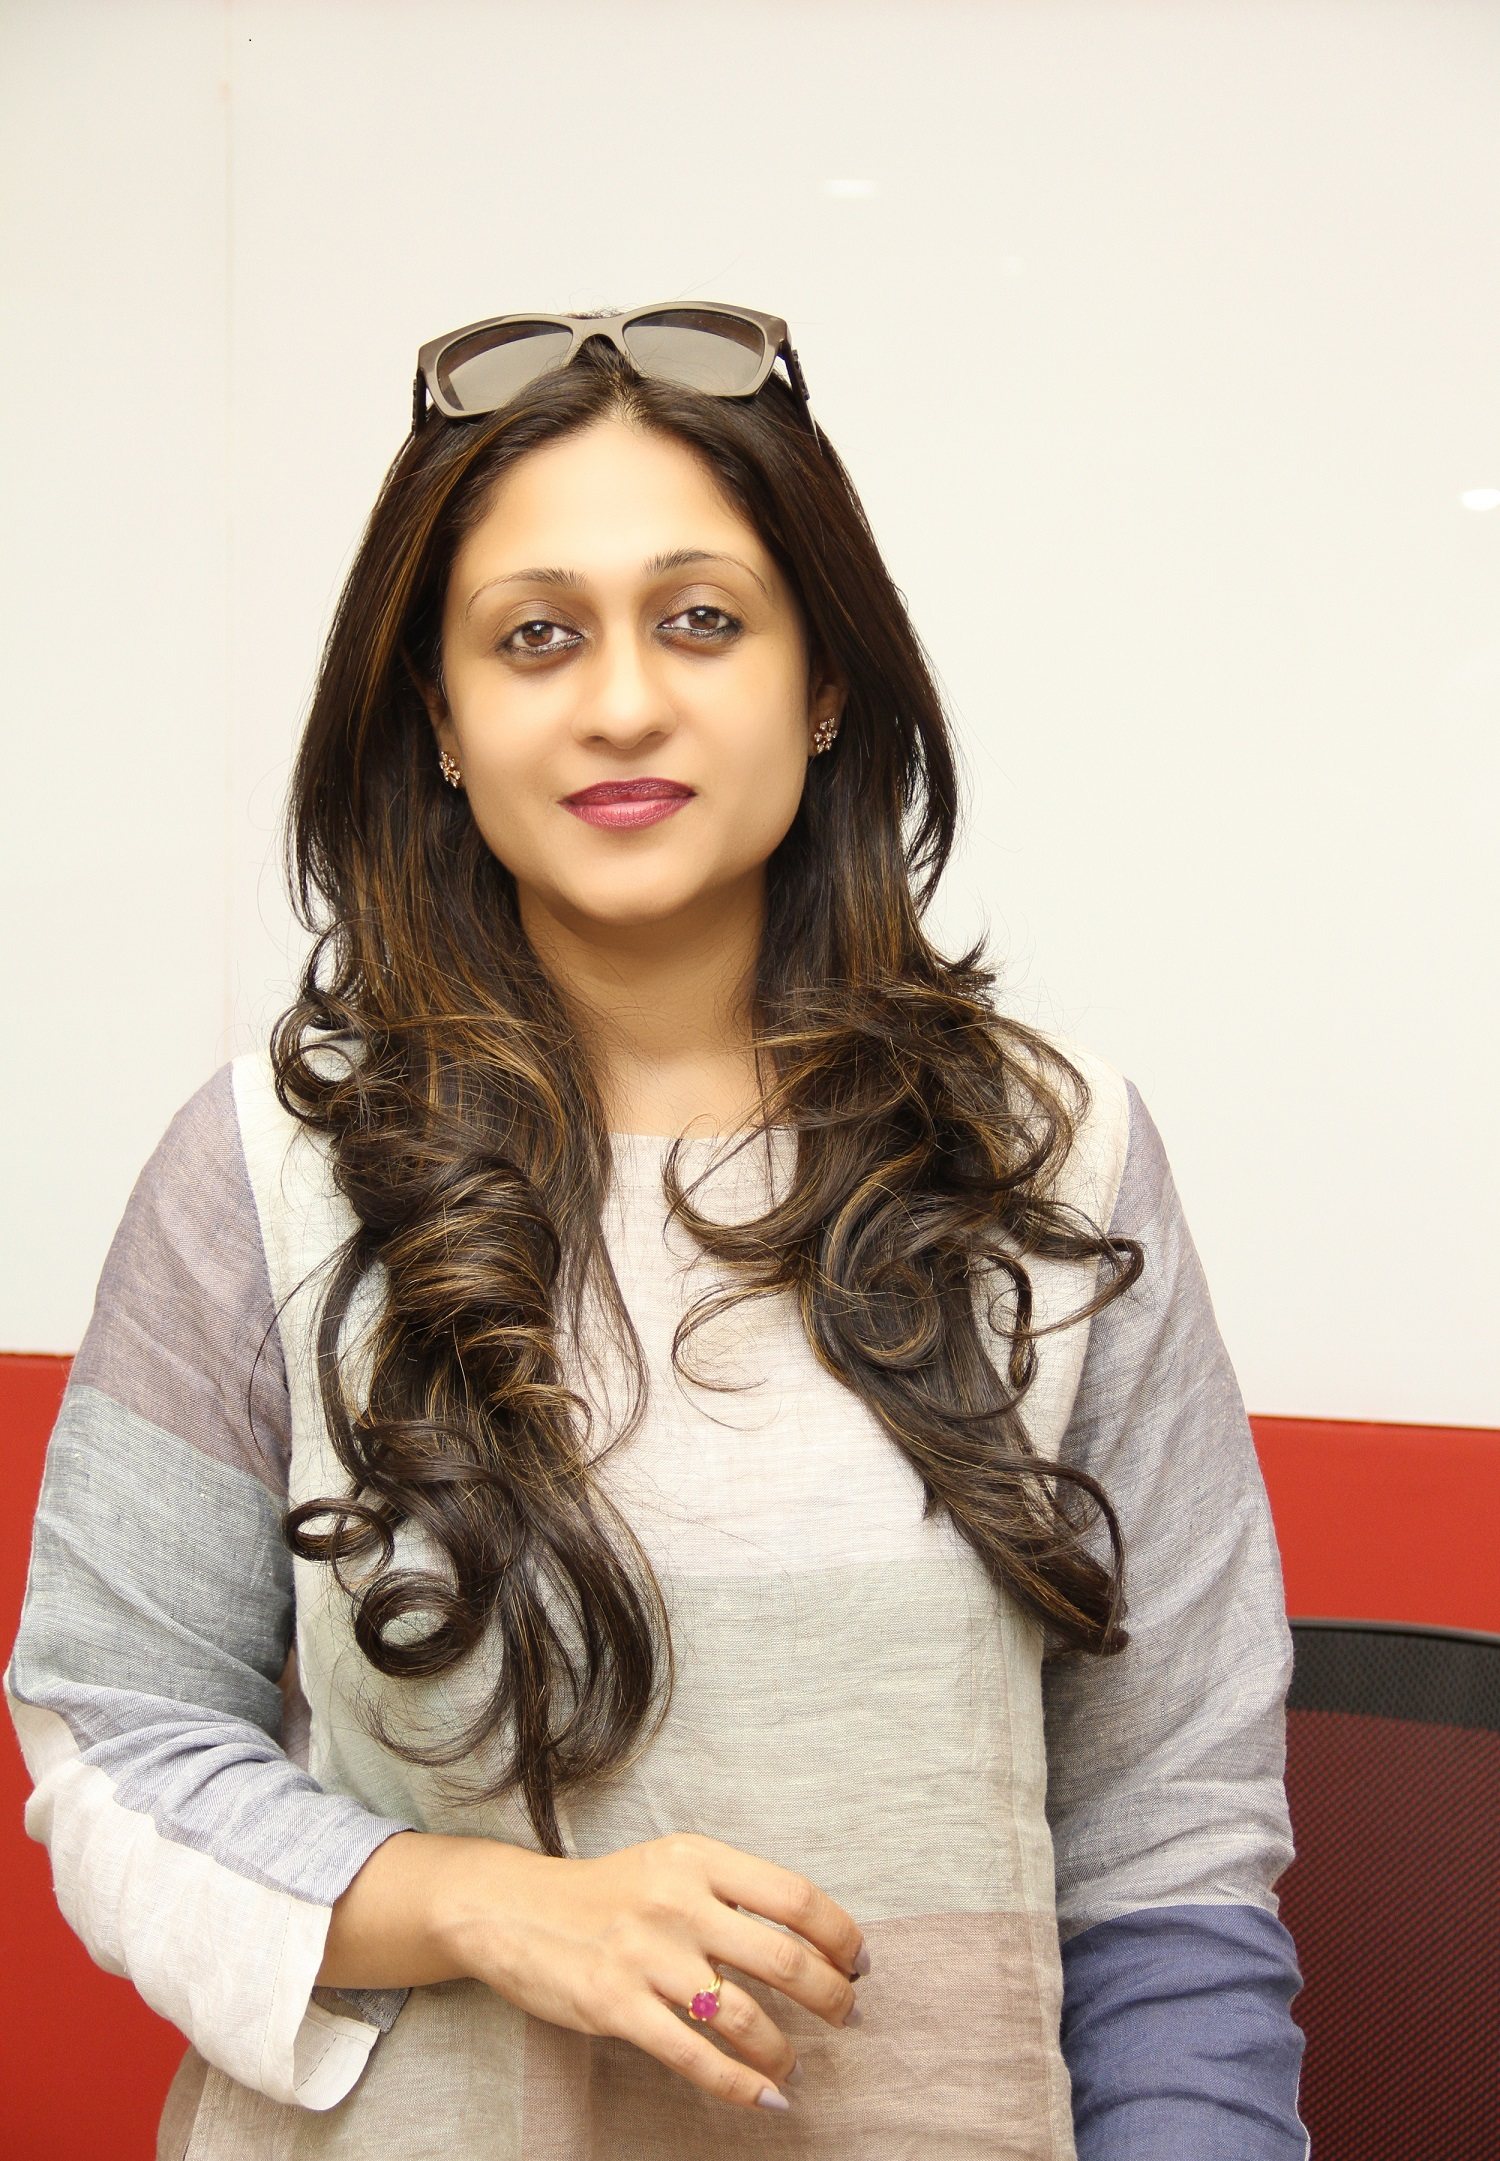 BWW Interview: NISHA NARAYANAN, COO, RED FM On Winning The BEST FM NETWORK 2018 And the future of radio in India